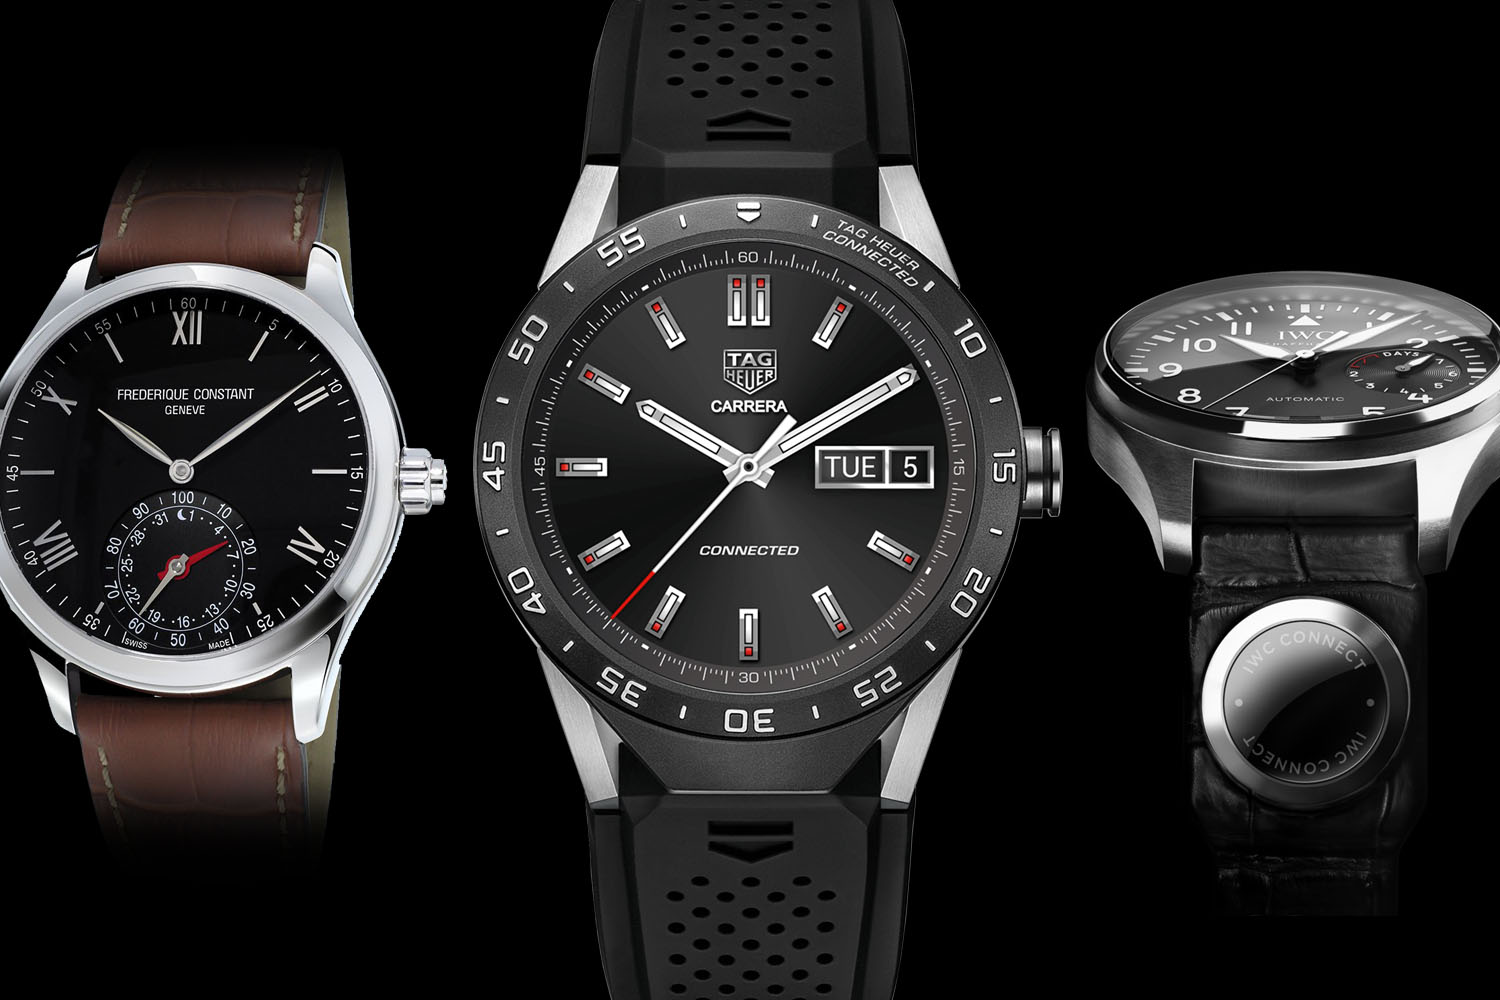 swiss watch industry Global exports of swiss watches have shrunk in recent years but exhibitors and traders at the world's largest fair of the watch-making industry, the baselworld, are confident the hard times will be over soon.